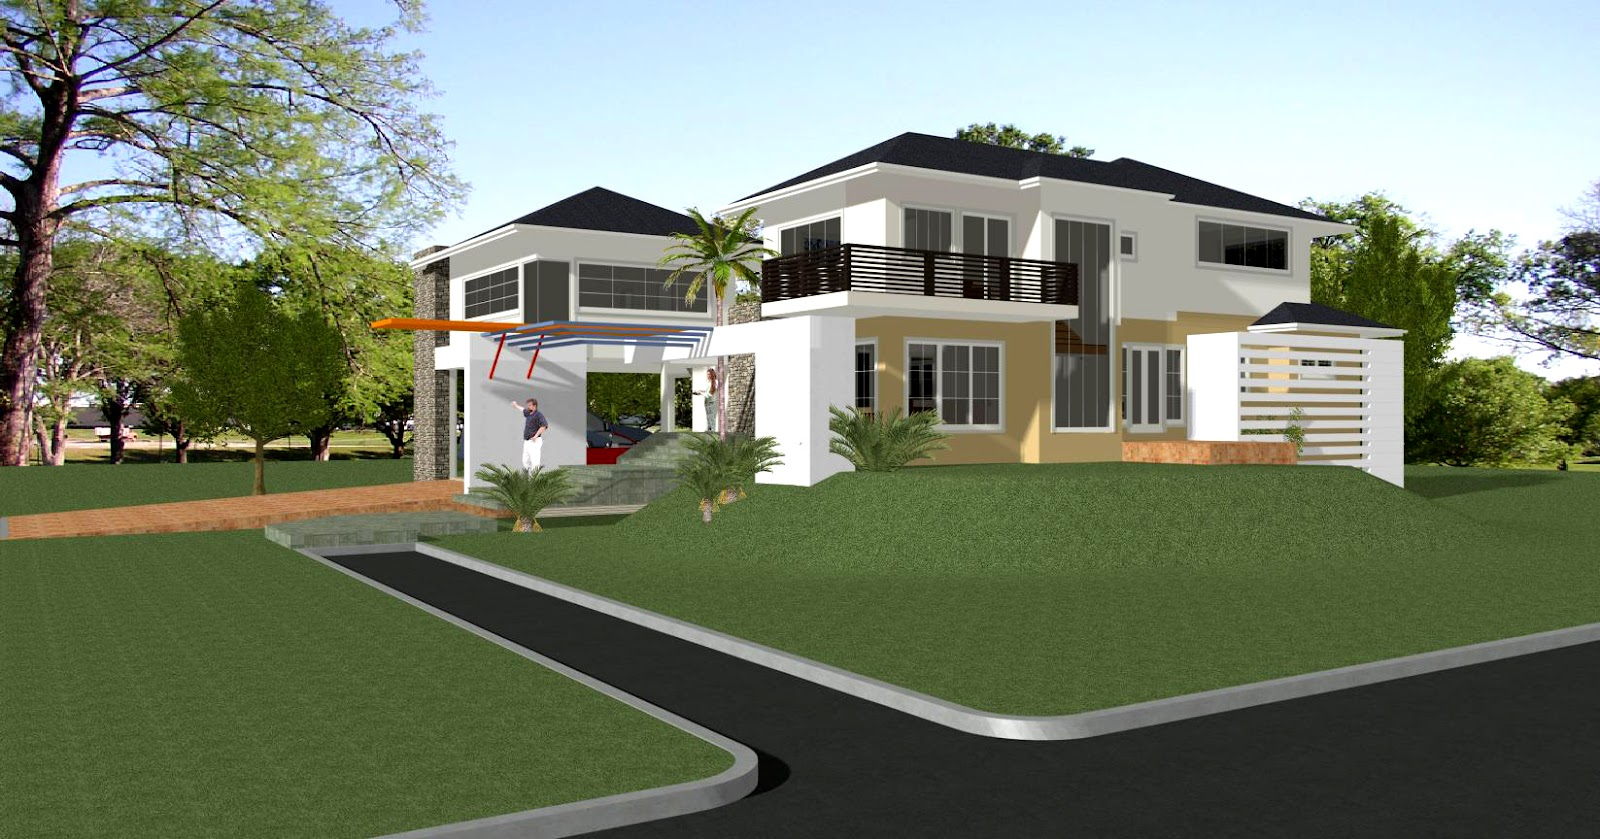 House designs in the philippines in iloilo by erecre group for New construction design ideas